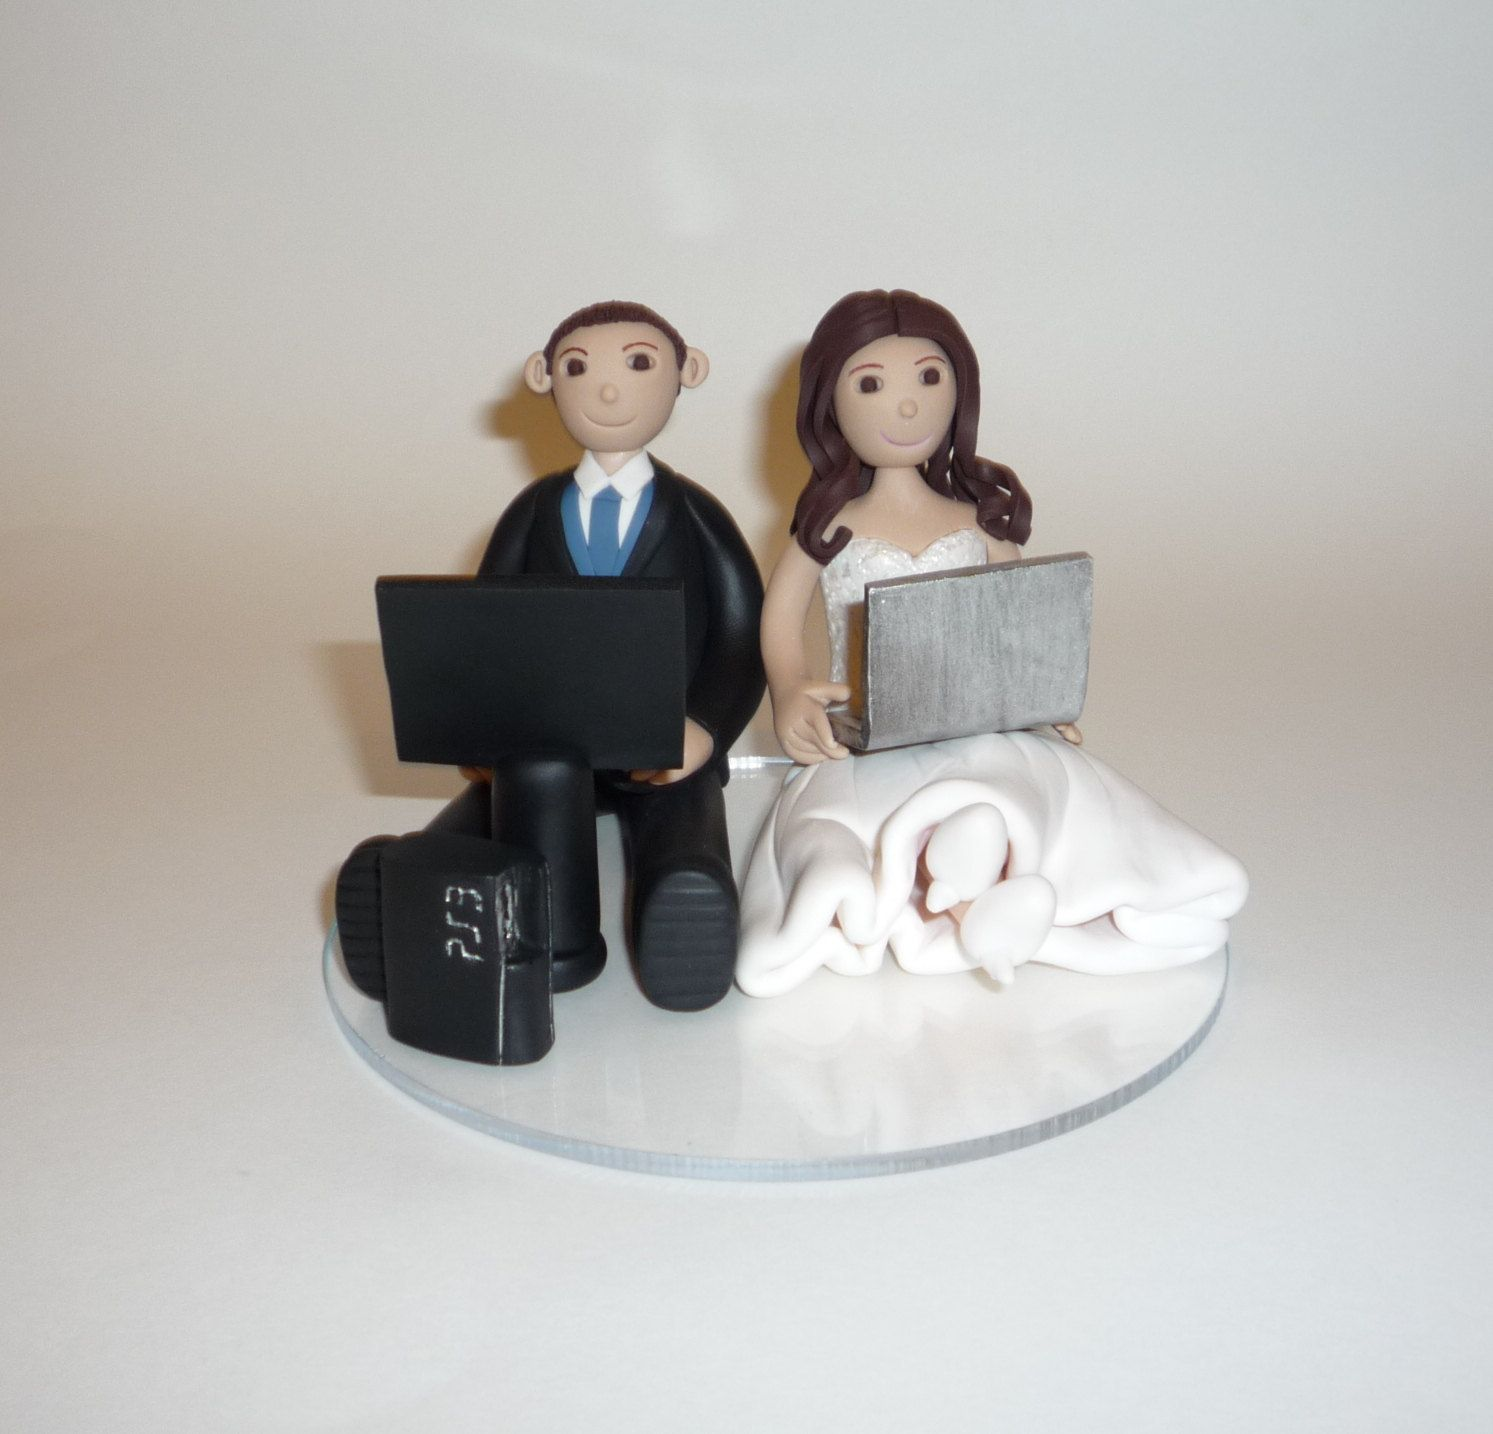 Enough With The Bride Dragging Groom Away From His Here Is A Perfect Cake Topper For R